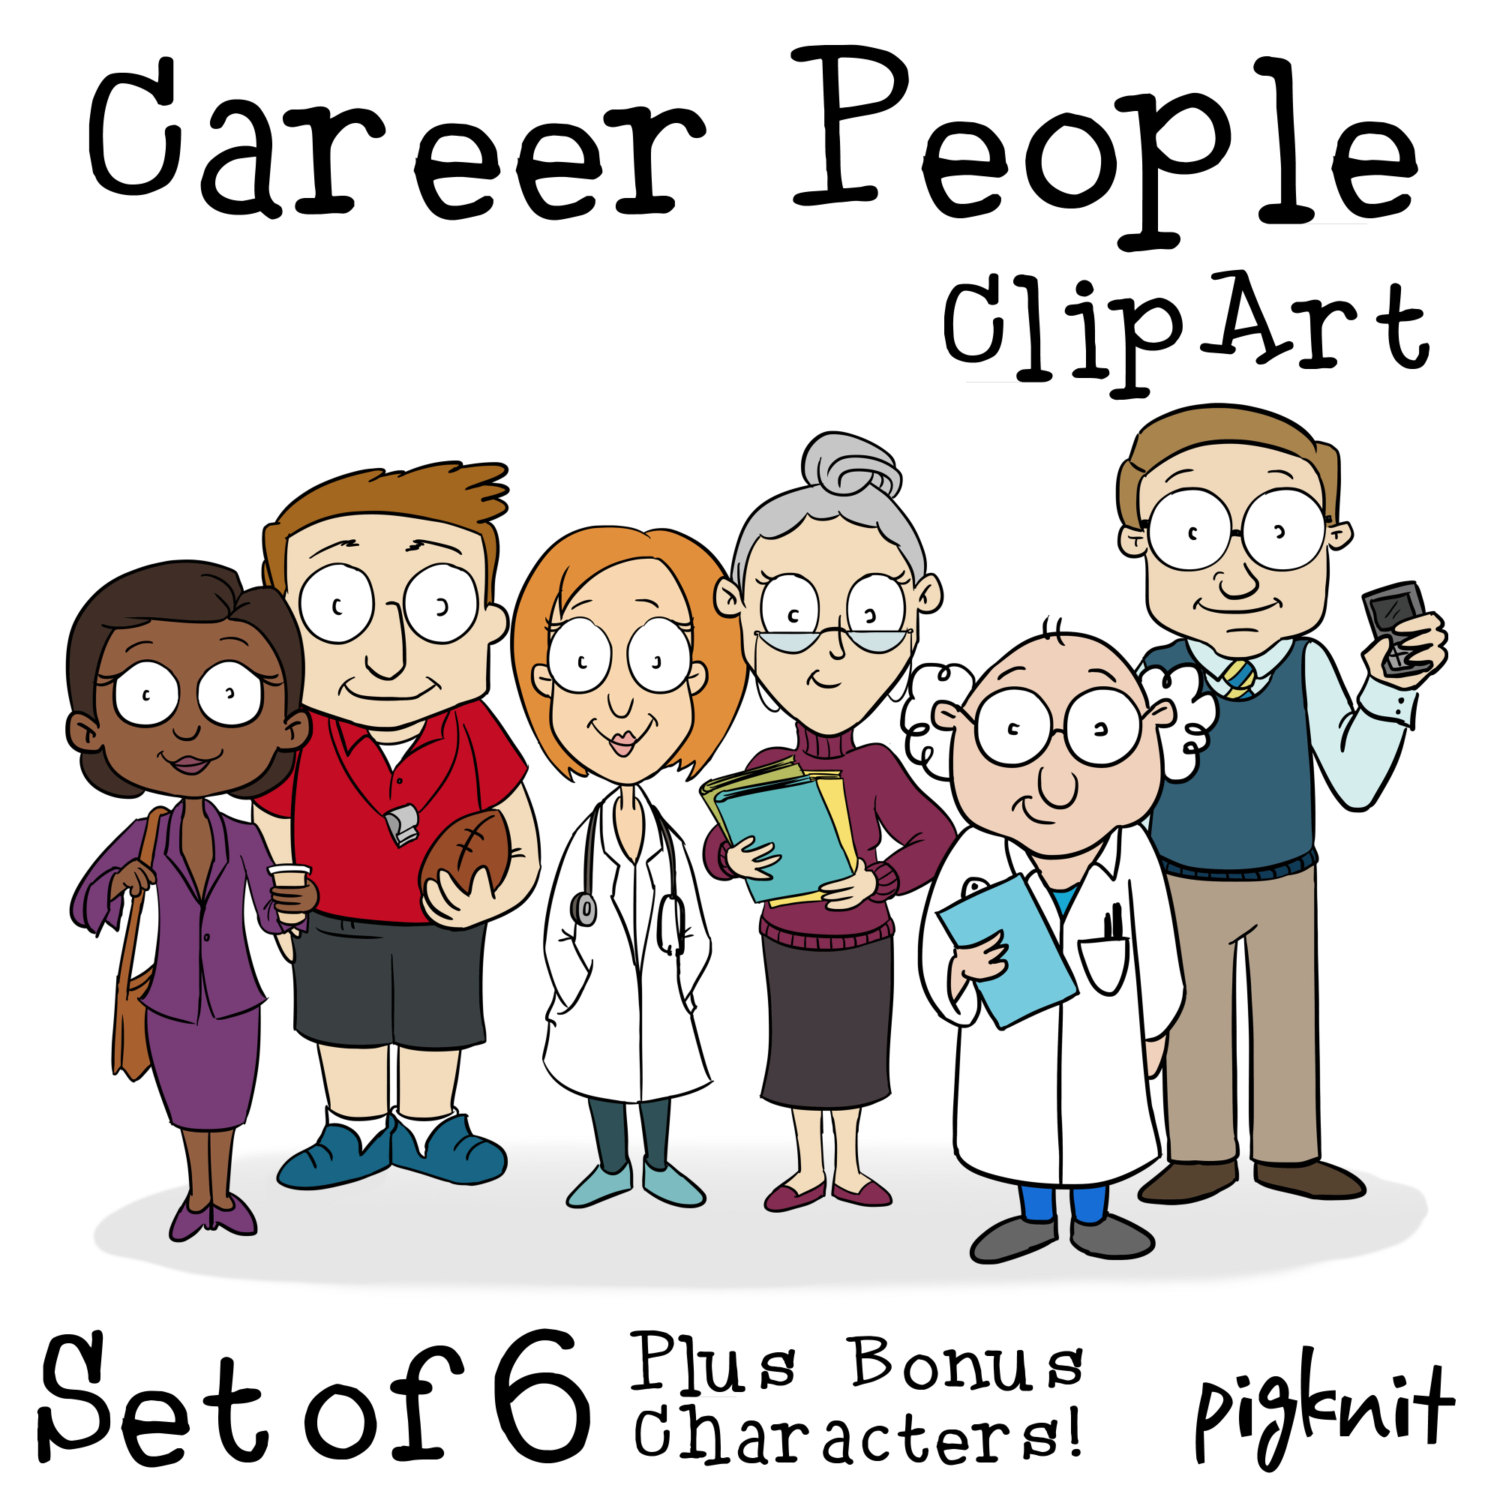 Career People Clip Art Cartoon Clipart Panda Free Clipart Images